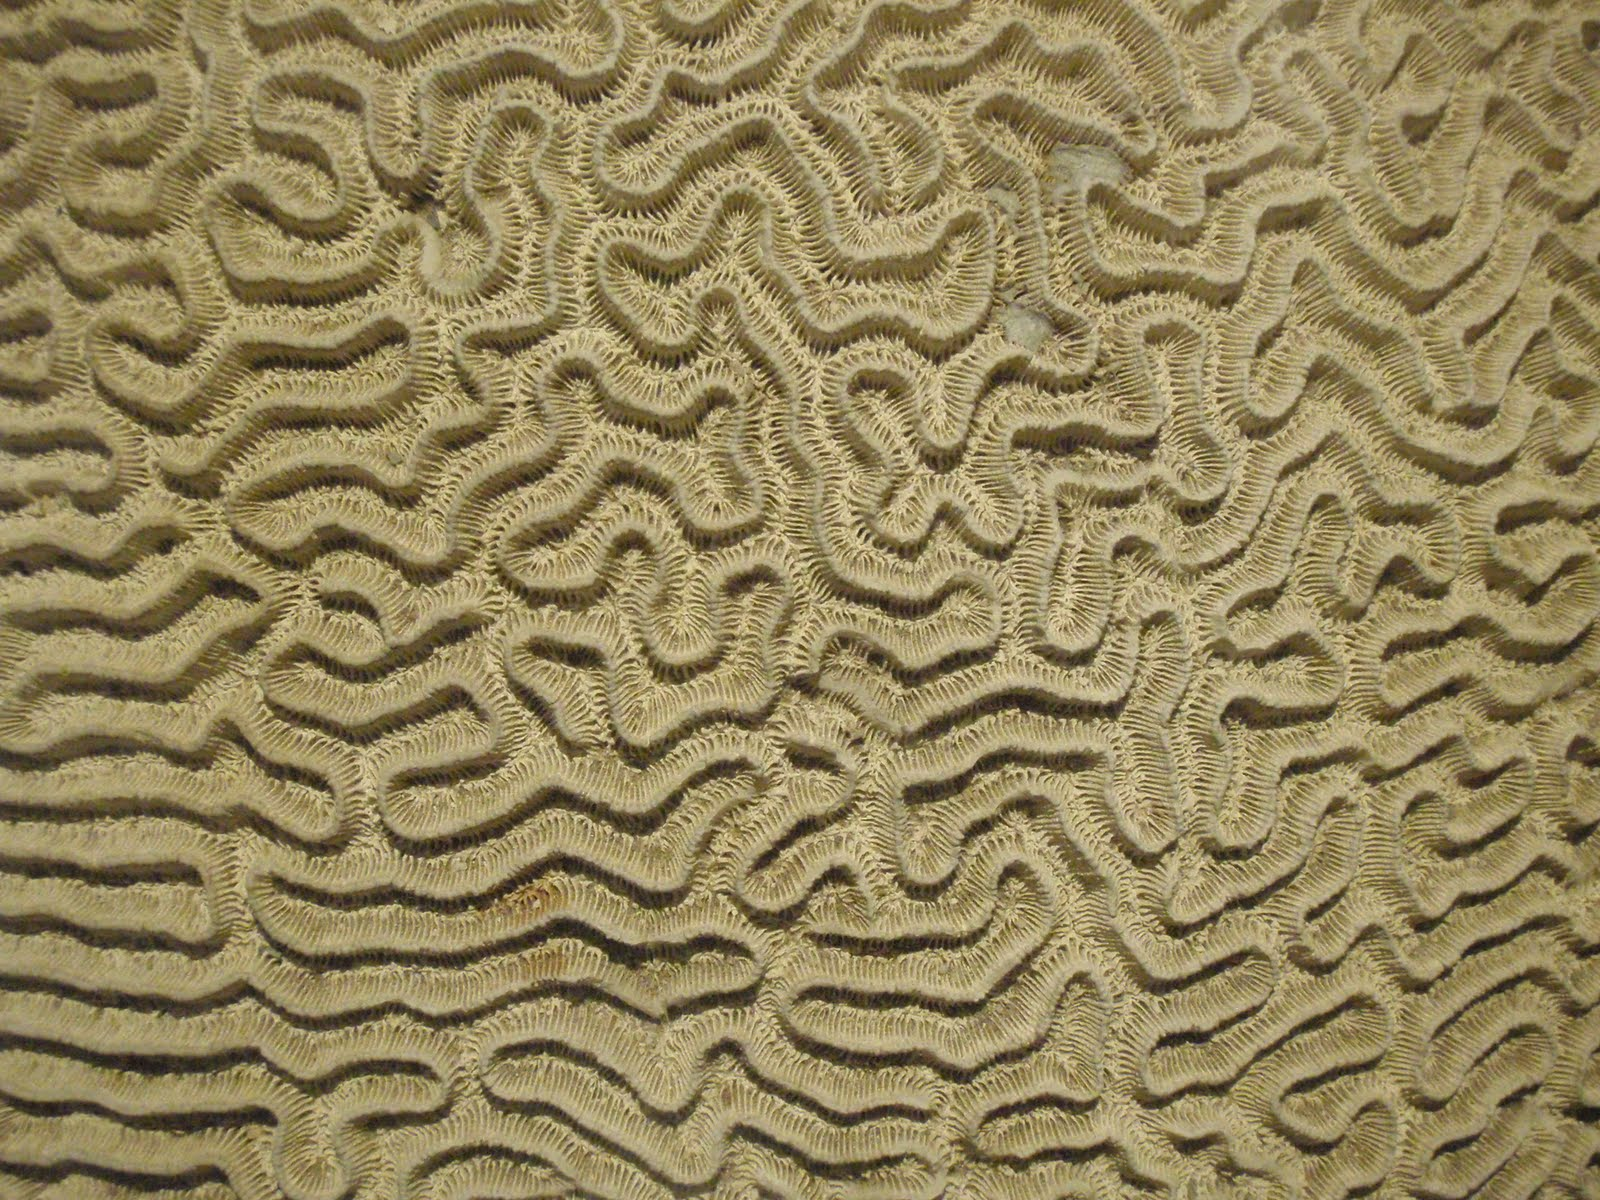 Coral Color Wallpaper Coral Color Wallpaper Patterns Coral Print 1600x1200